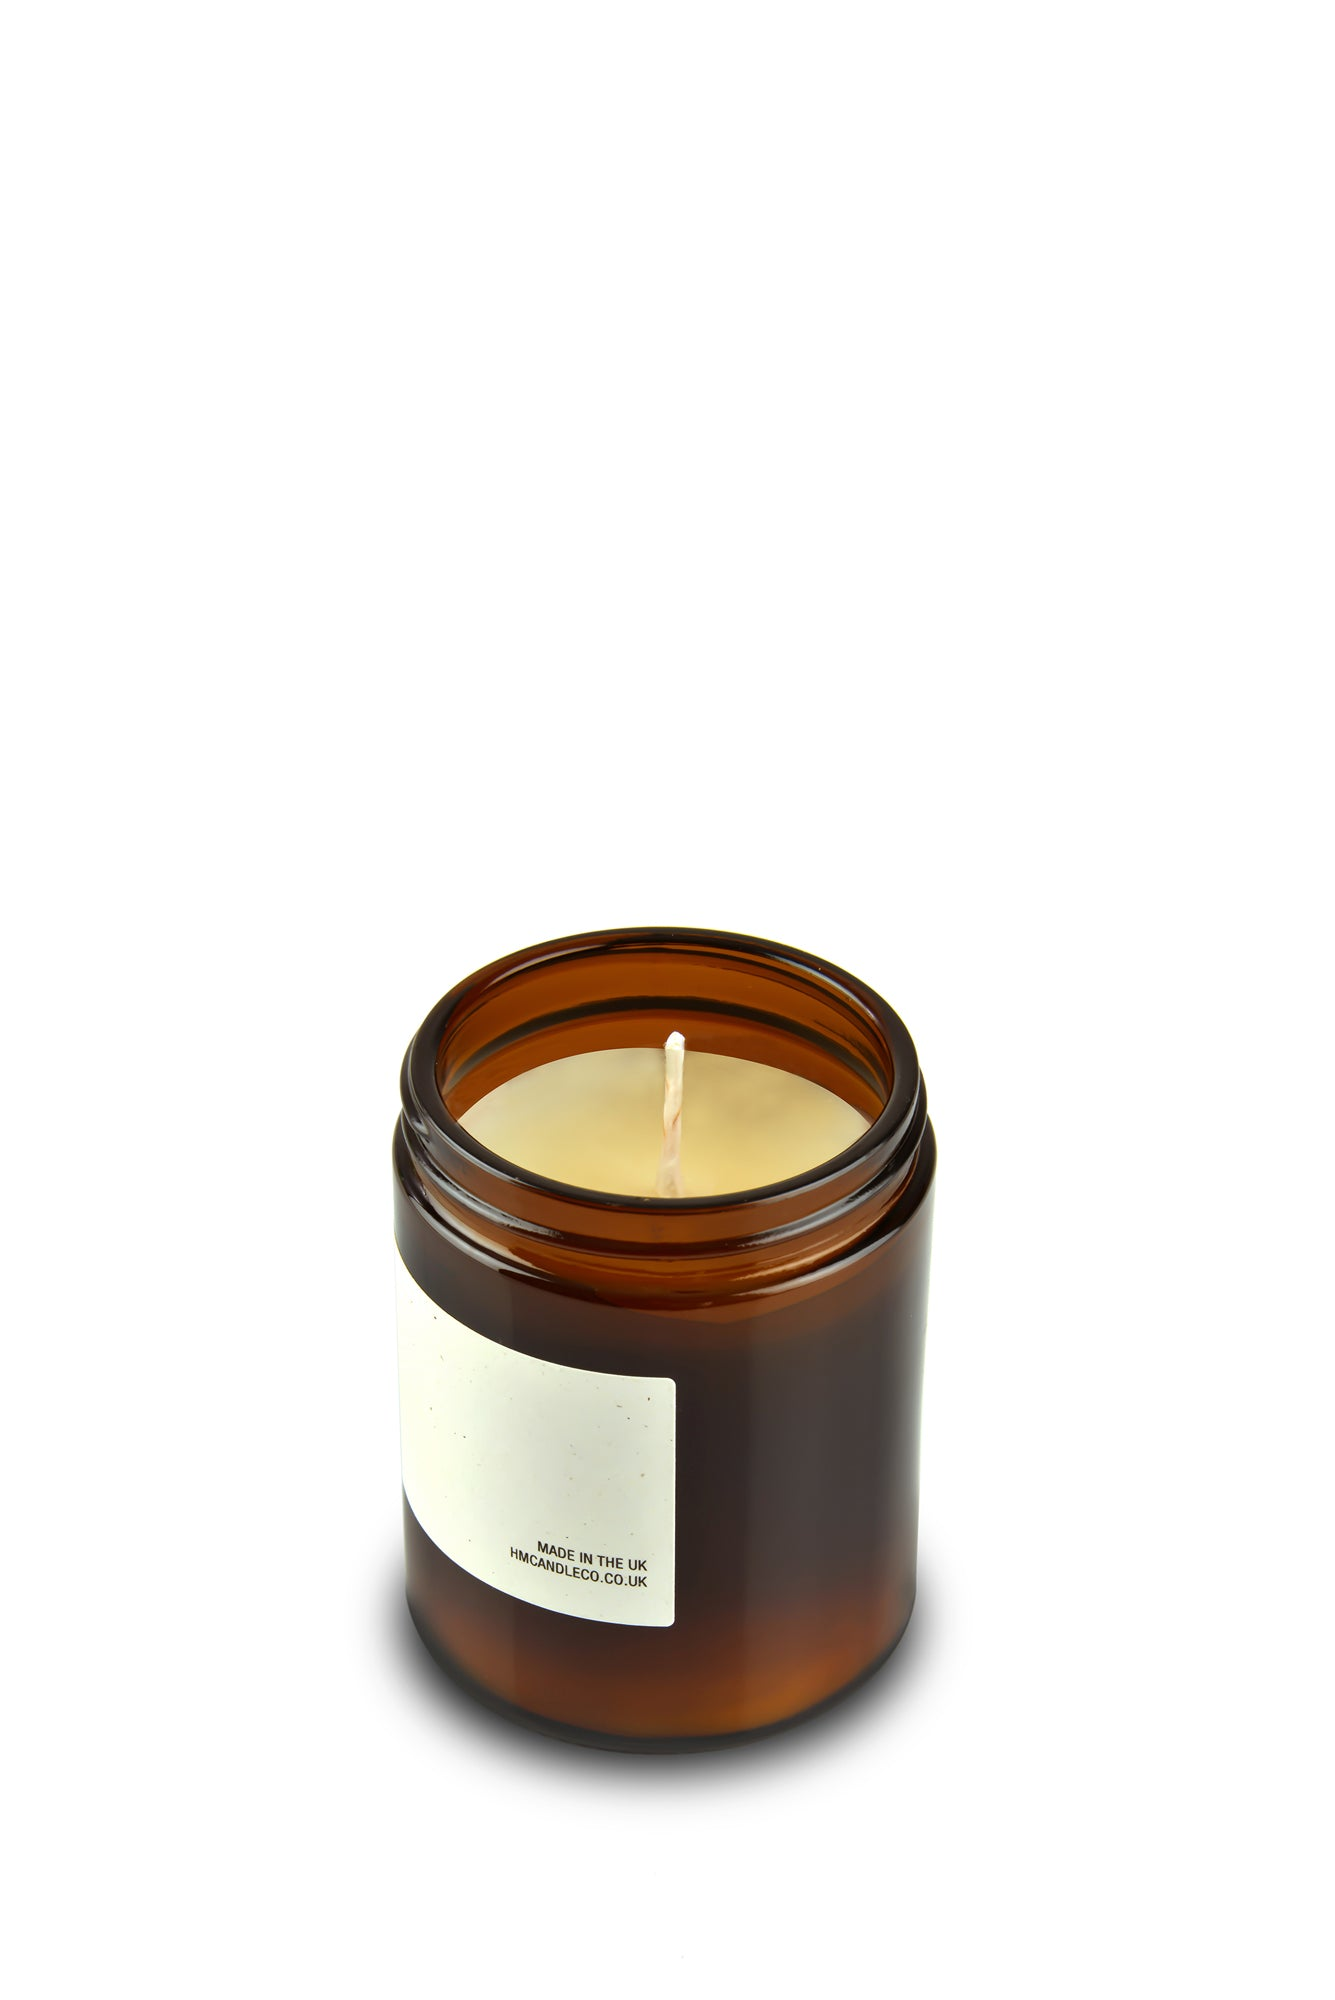 Bay + Rosemary Soy Wax Candle